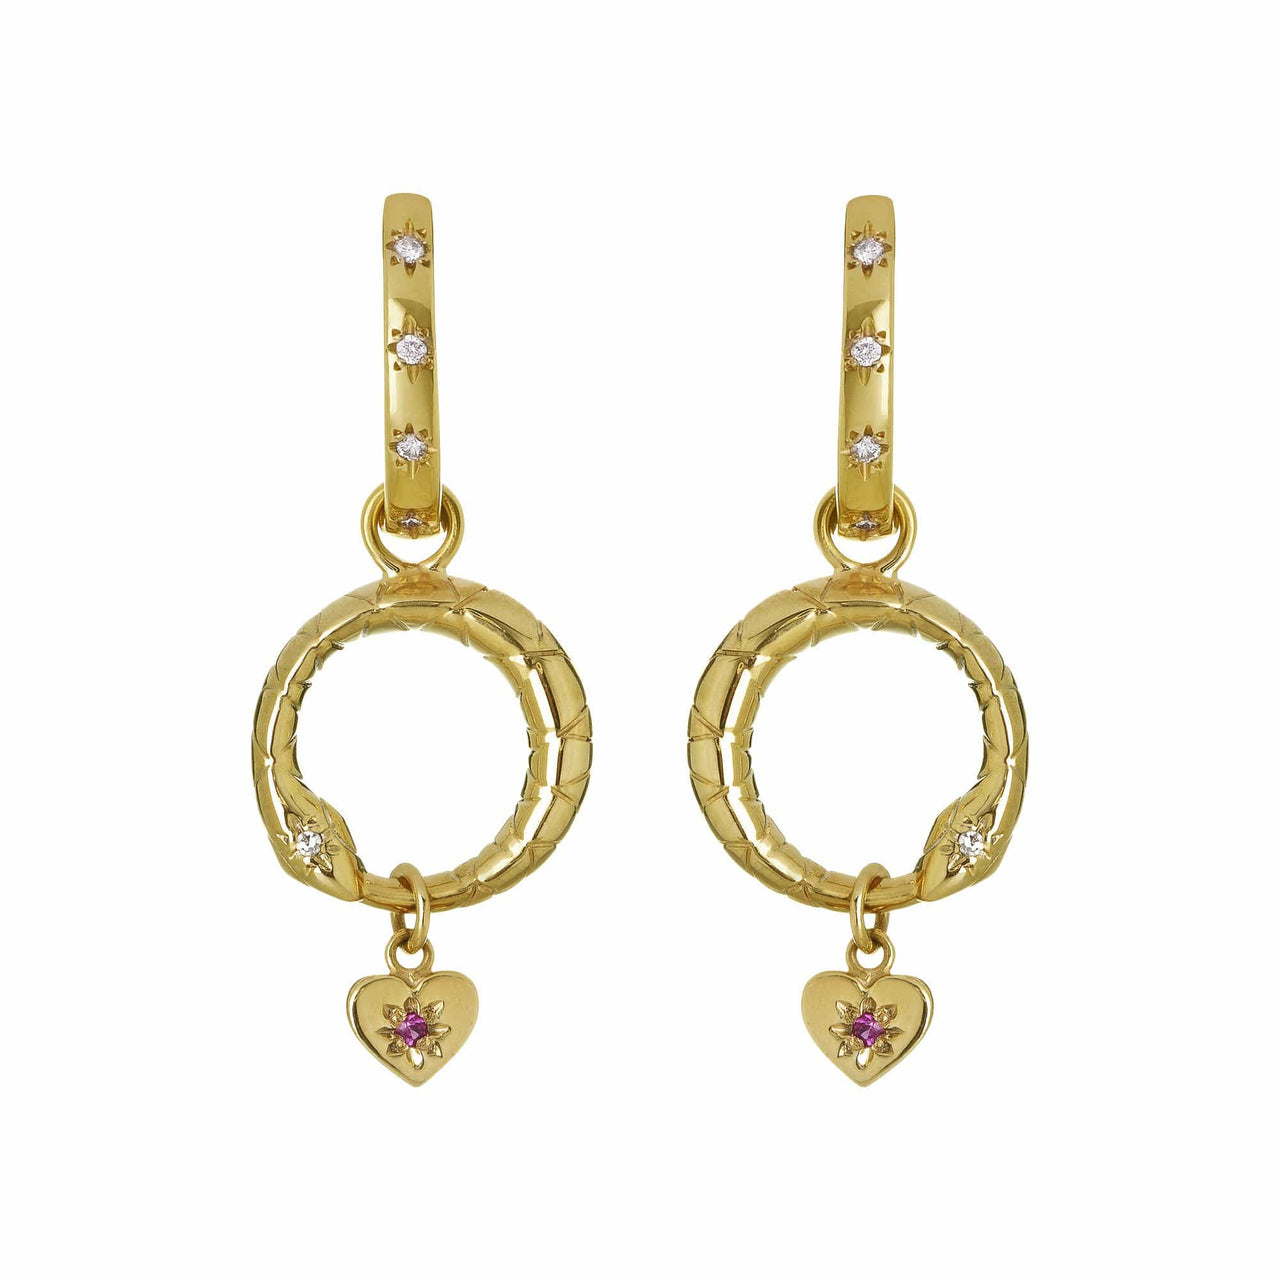 Mel Bandeira Earrings Ouroboros Detachable Earrings